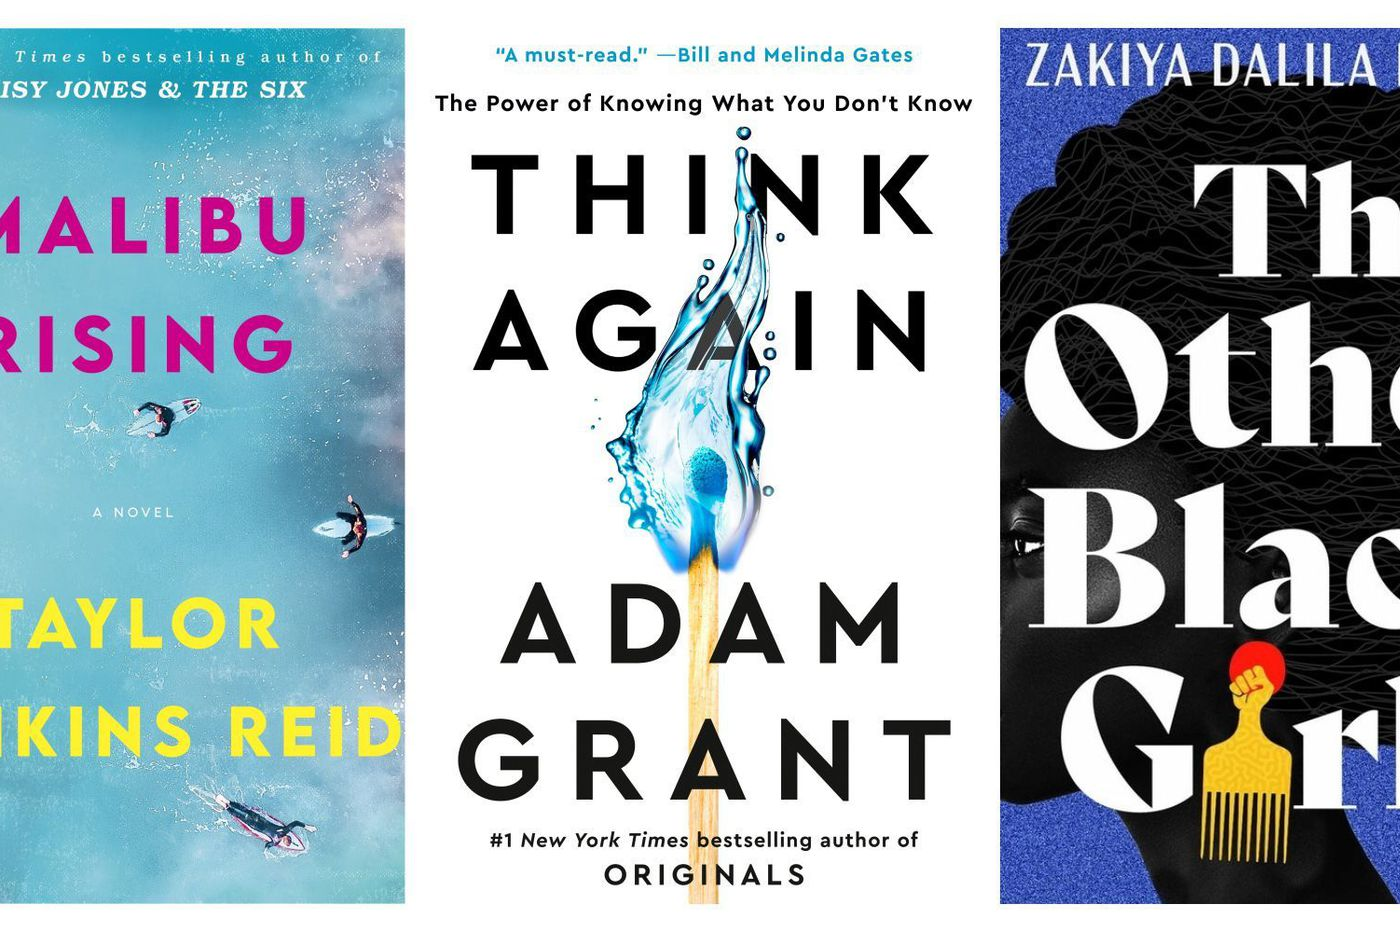 What to read in 2021 — based on what you loved in 2020